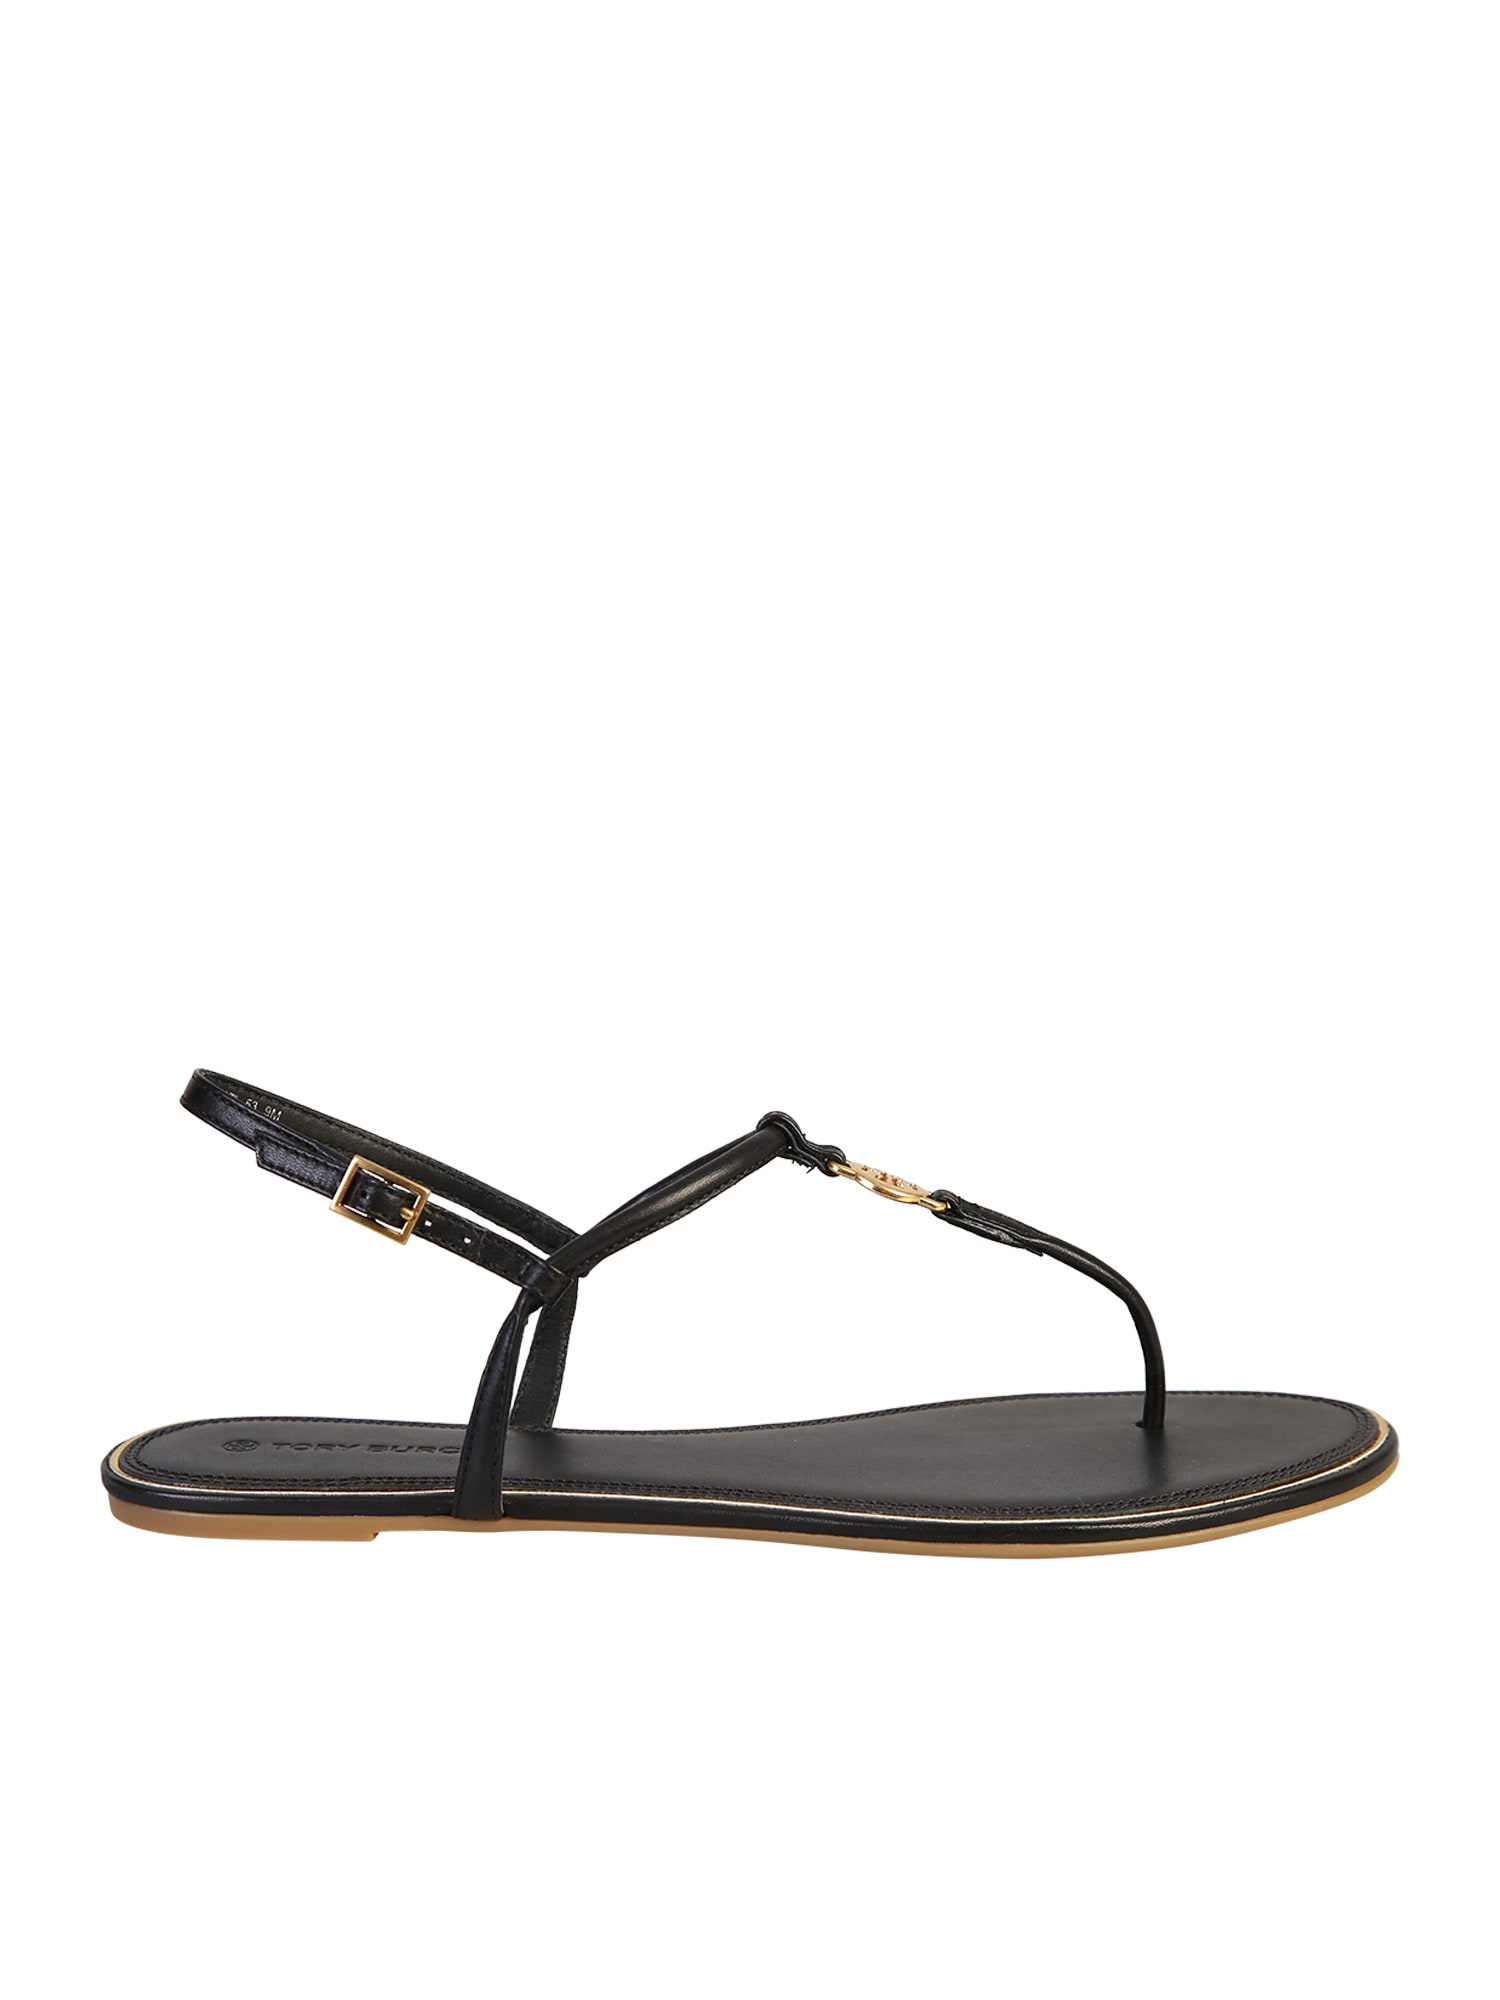 Buy Tory Burch Emmy Sandals online, shop Tory Burch shoes with free shipping